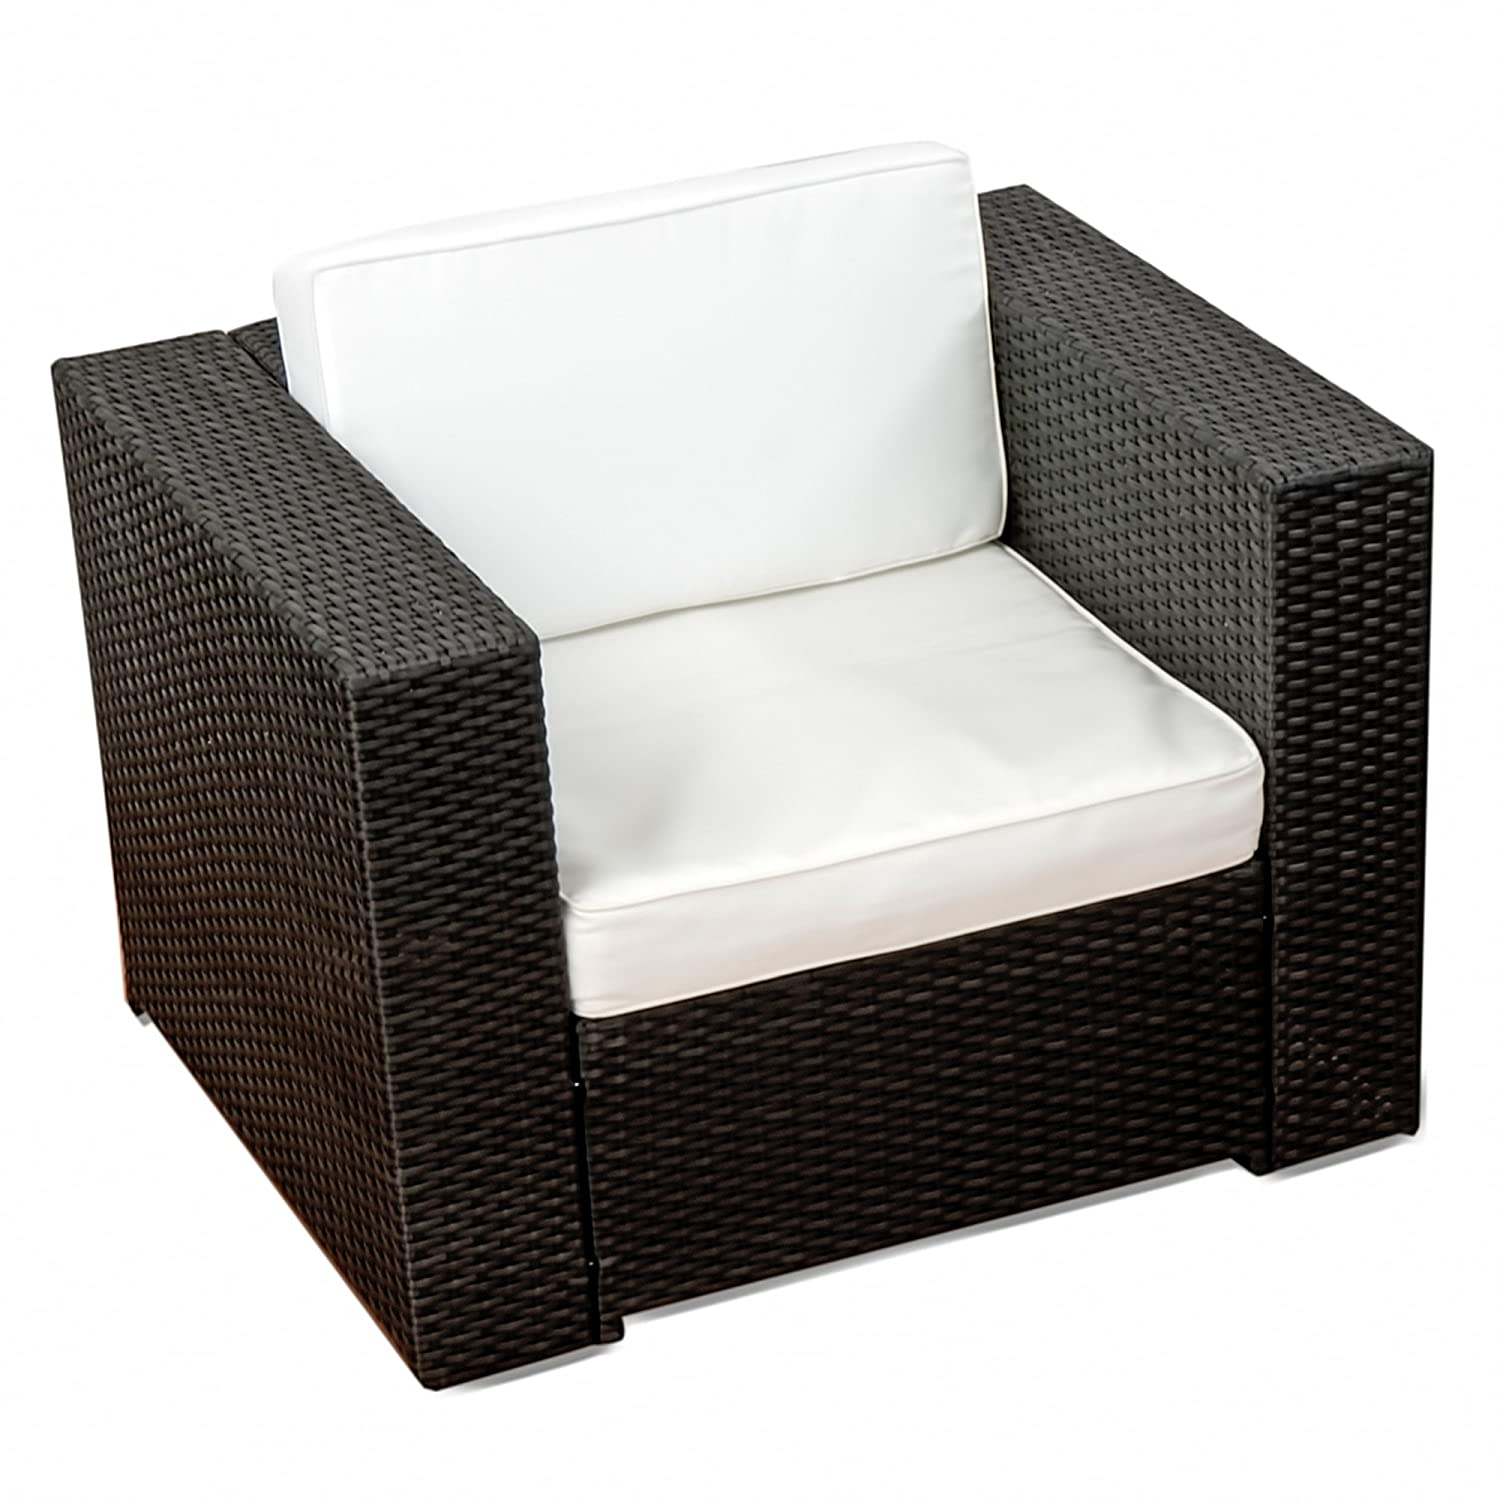 Amazon.de: XINRO (1er) Premium Lounge Sessel - Lounge Sofa ...